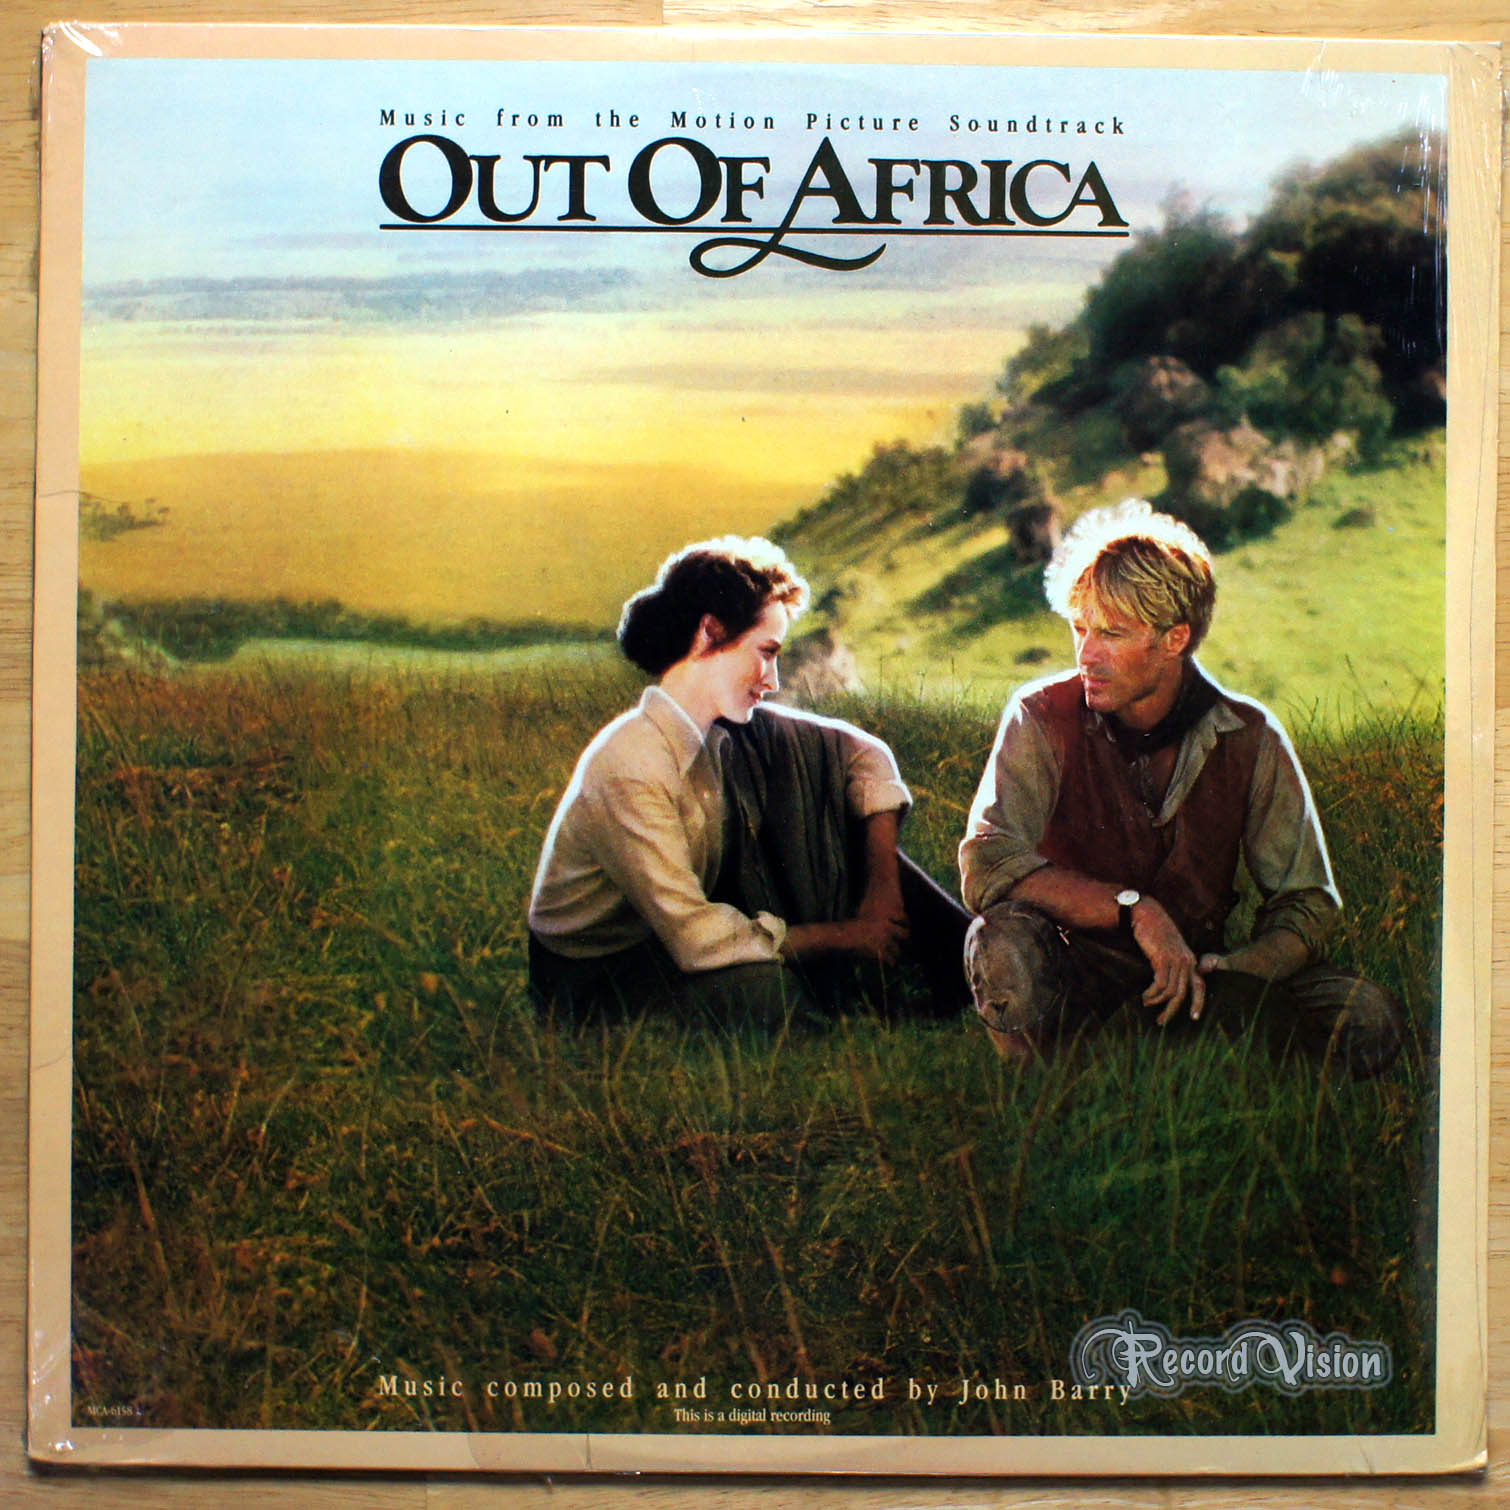 ASSORTED (SOUNDTRACK) - Out of Africa - 33T